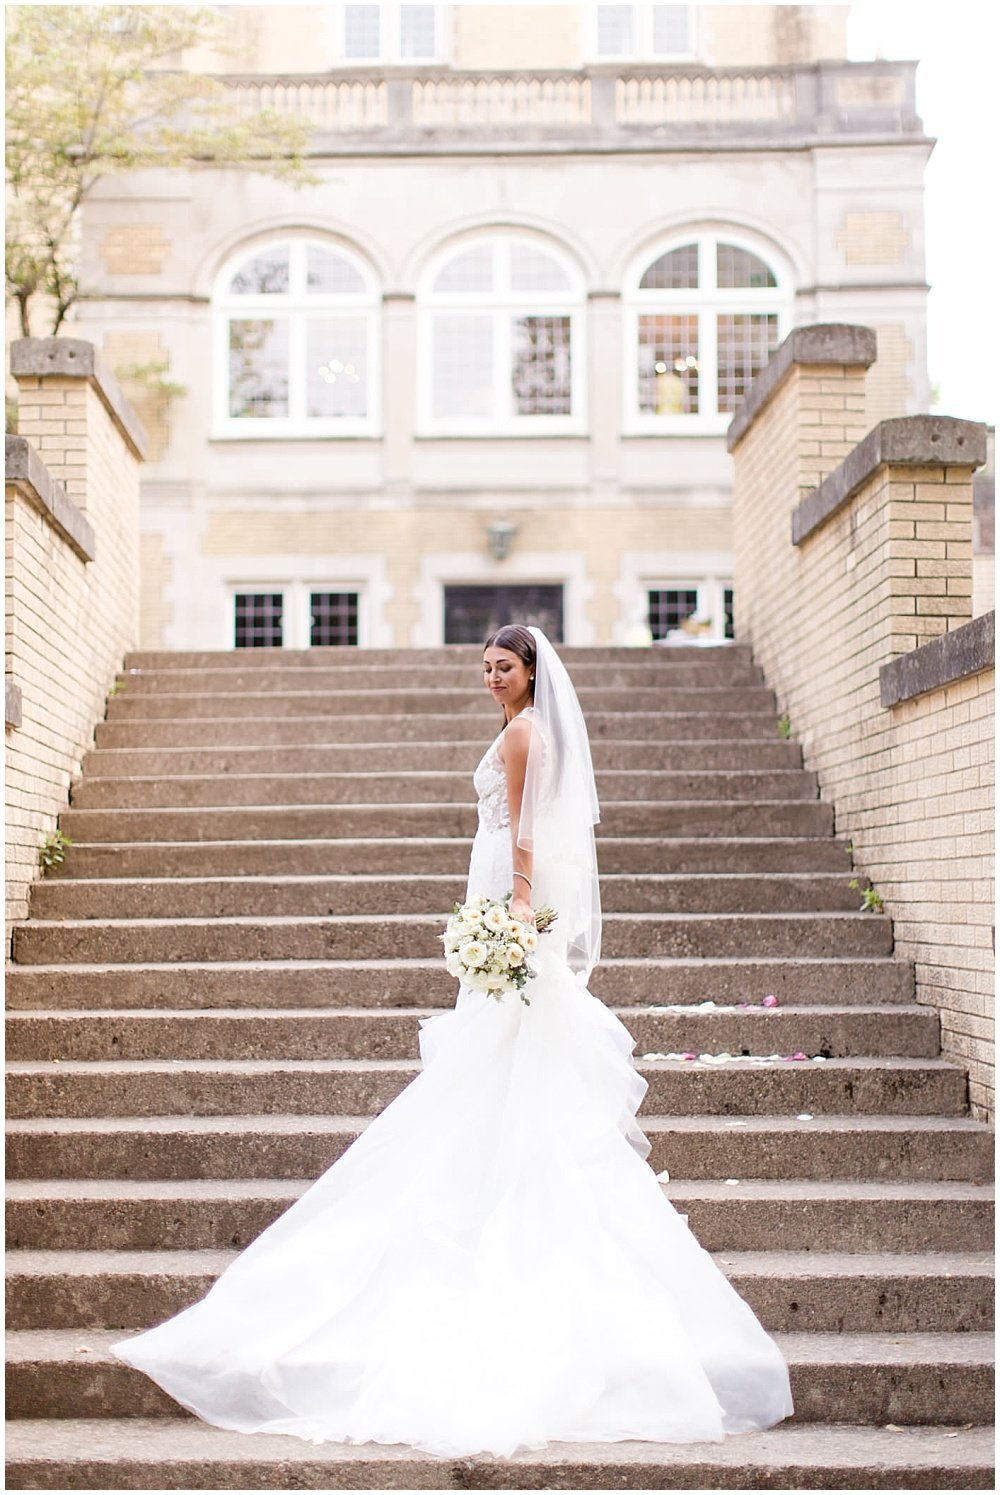 Summer-Outdoor-Terrace-Laurel-Hall-Indianapolis-Wedding-Danielle-Harris-Photography- Jessica-Dum-Wedding-Coordination-photo__0021